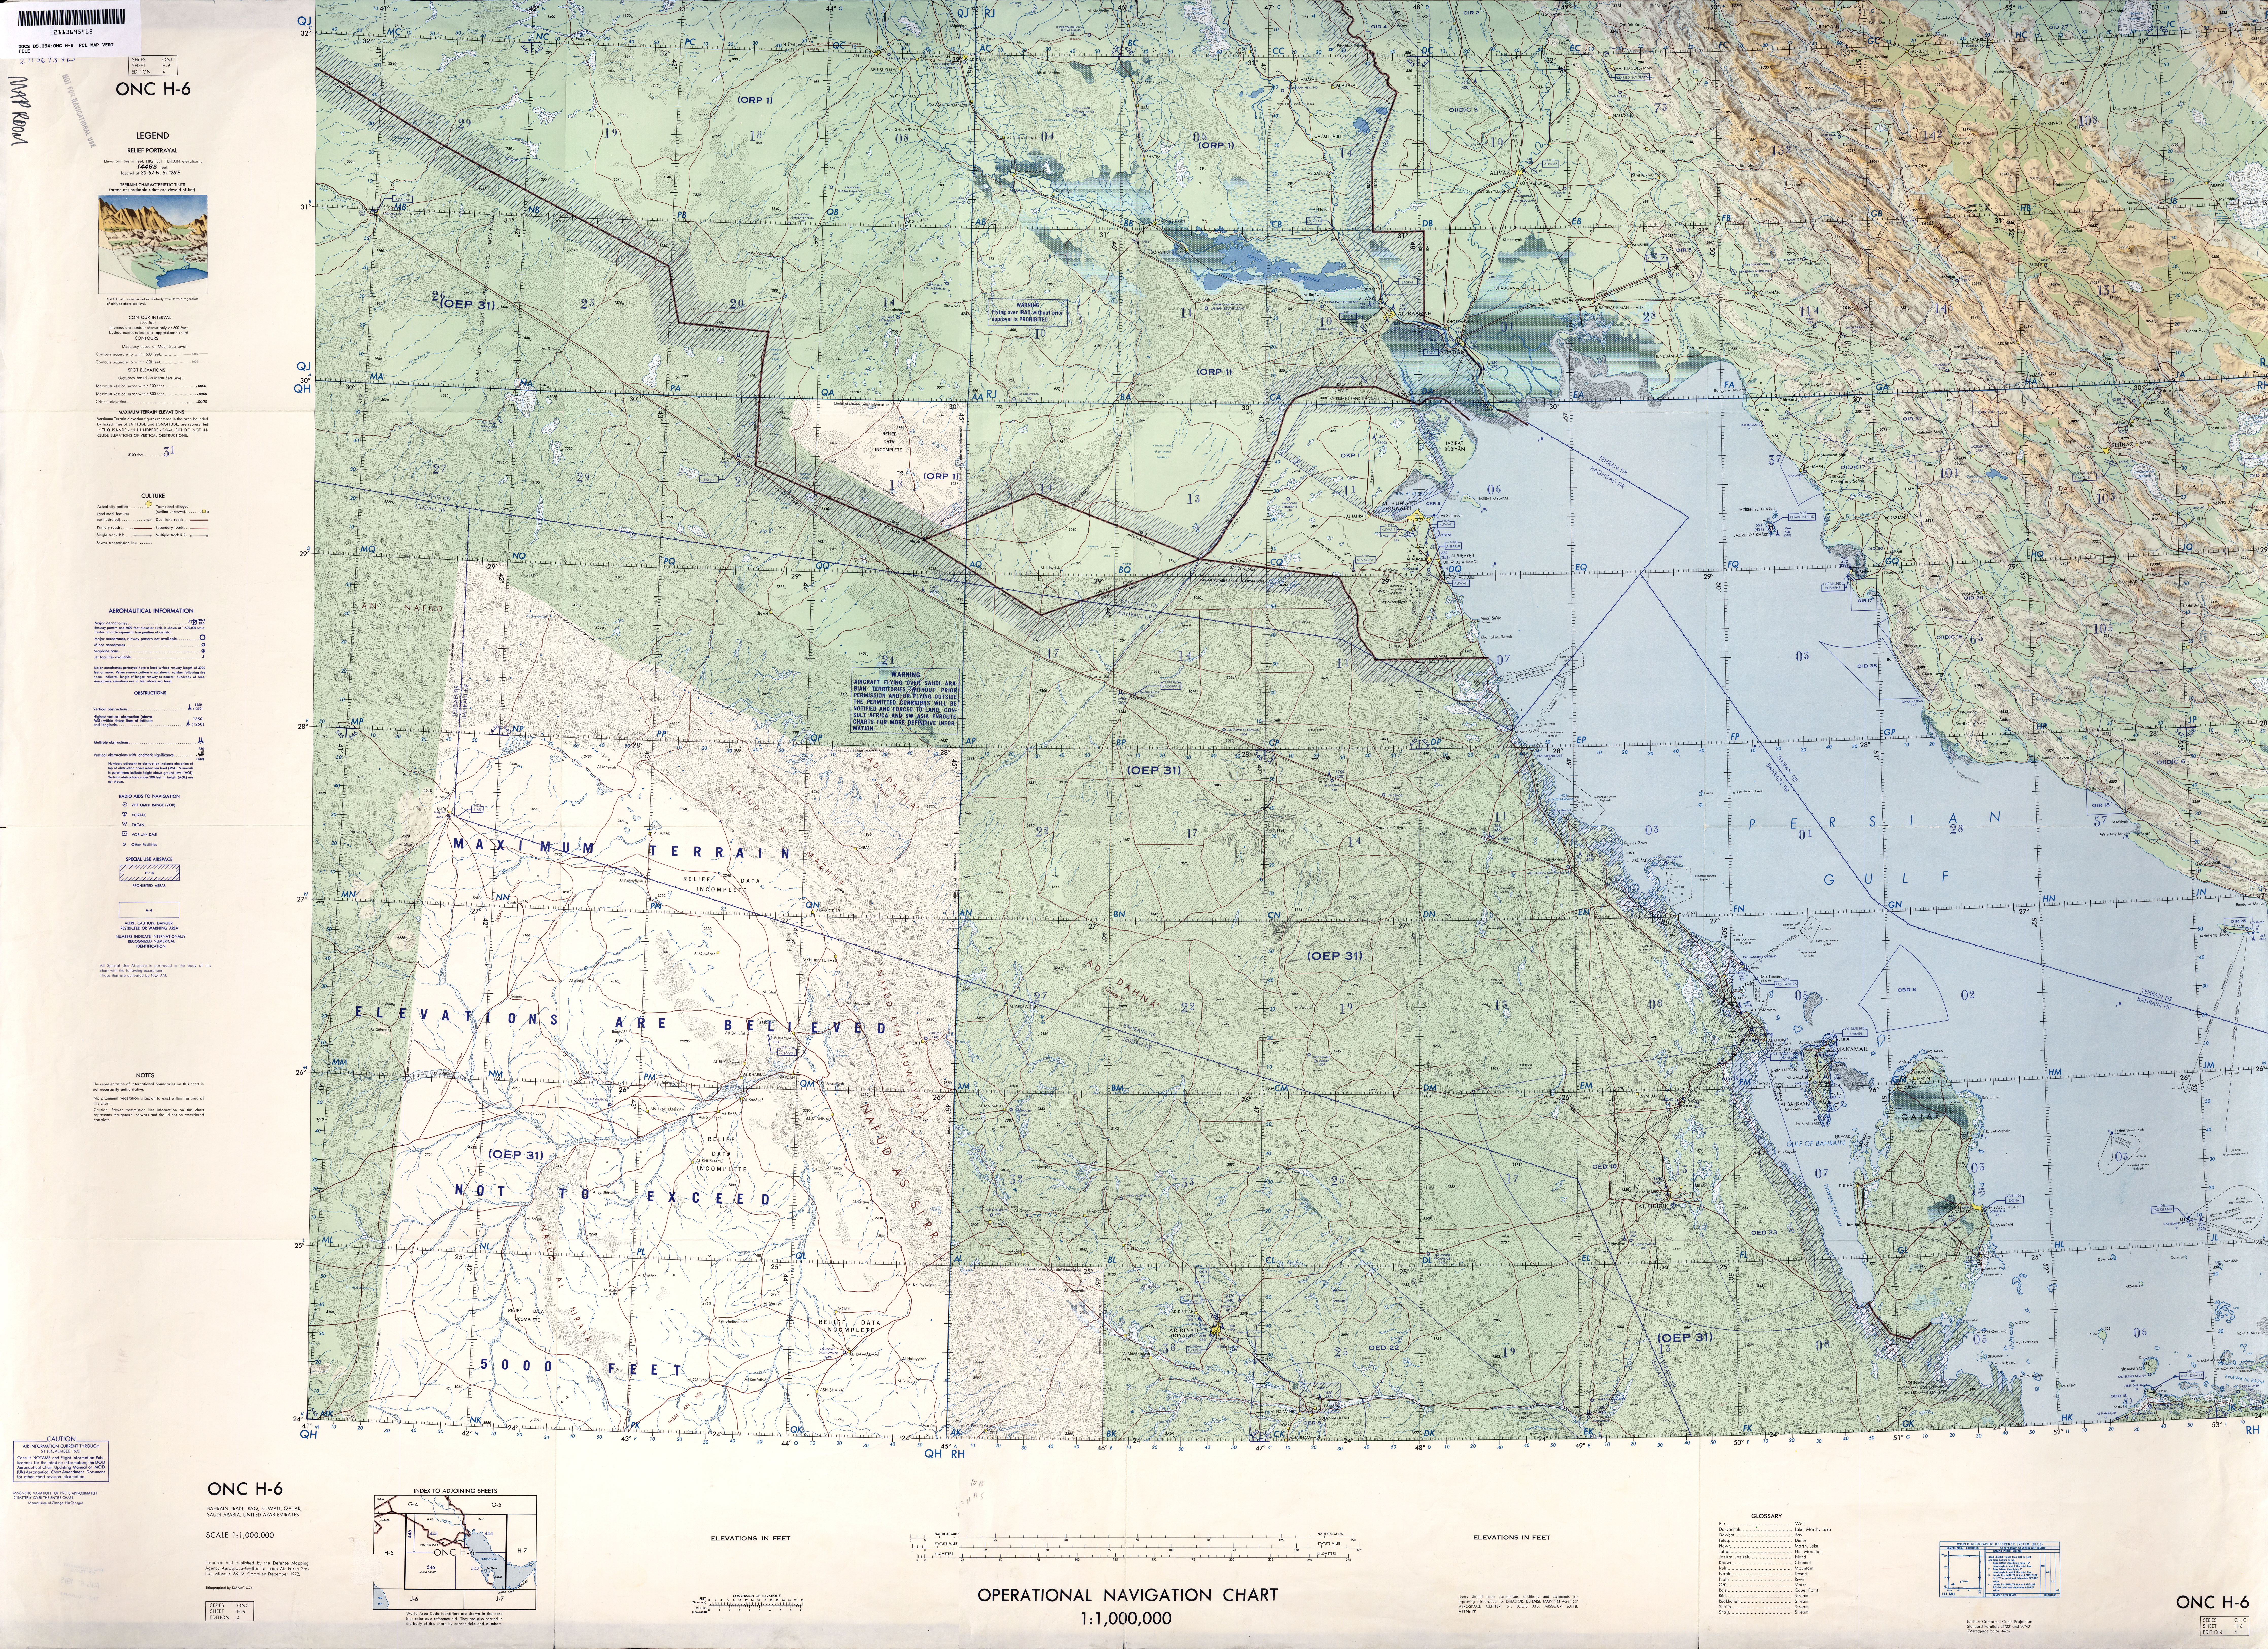 Middle East - Operational Navigation Charts - Perry-Castañeda Map on